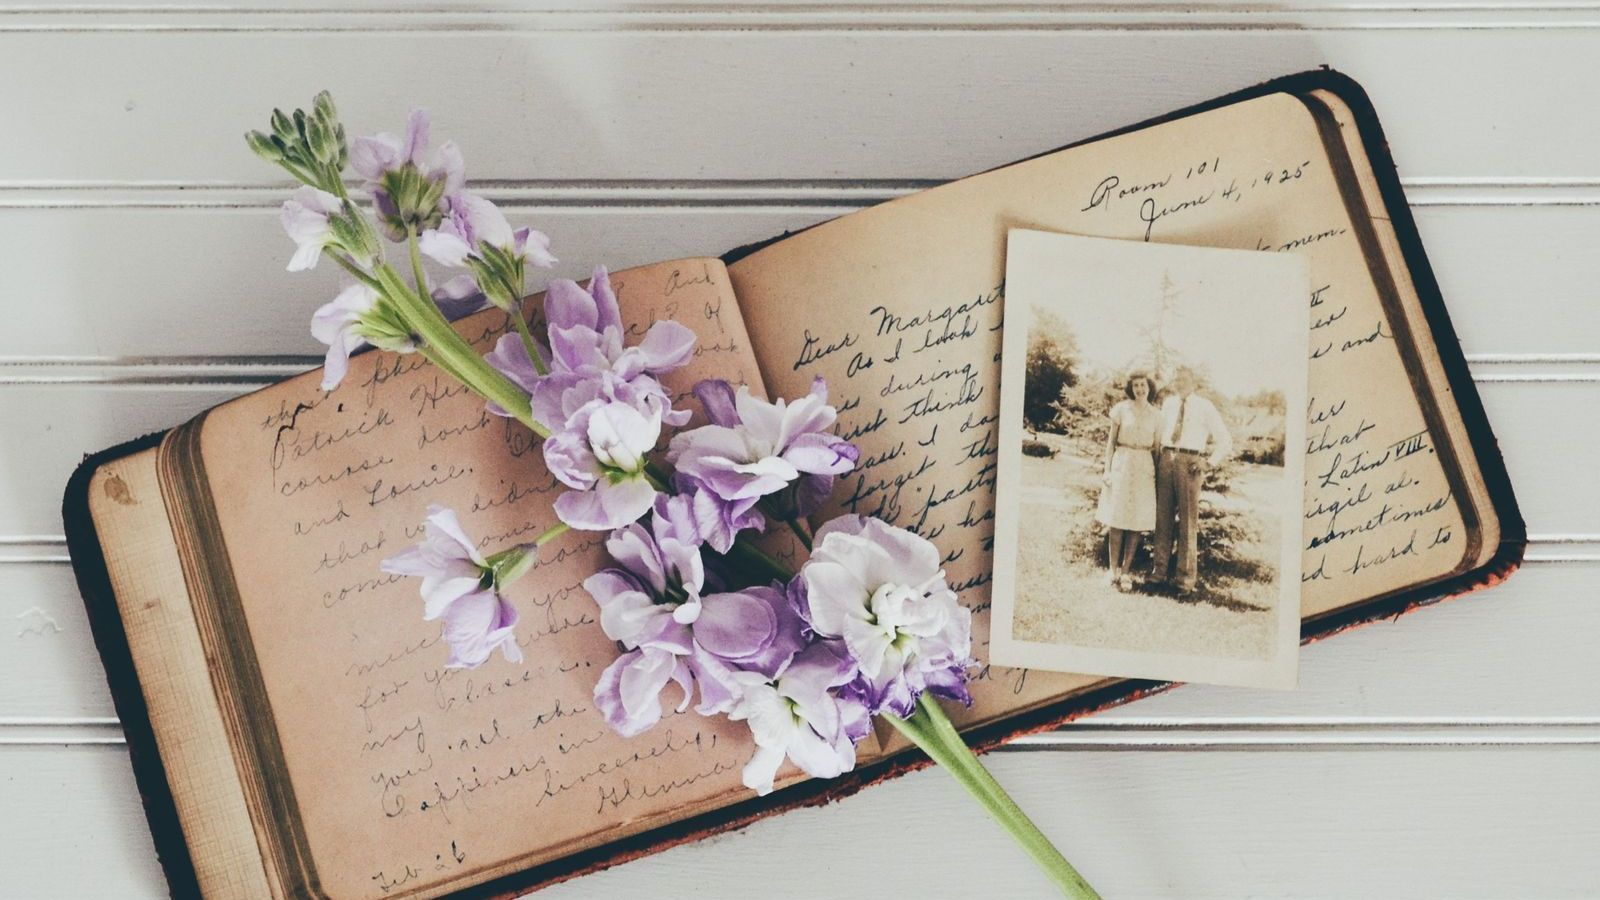 Finding an Heir for Your Genealogy Collection